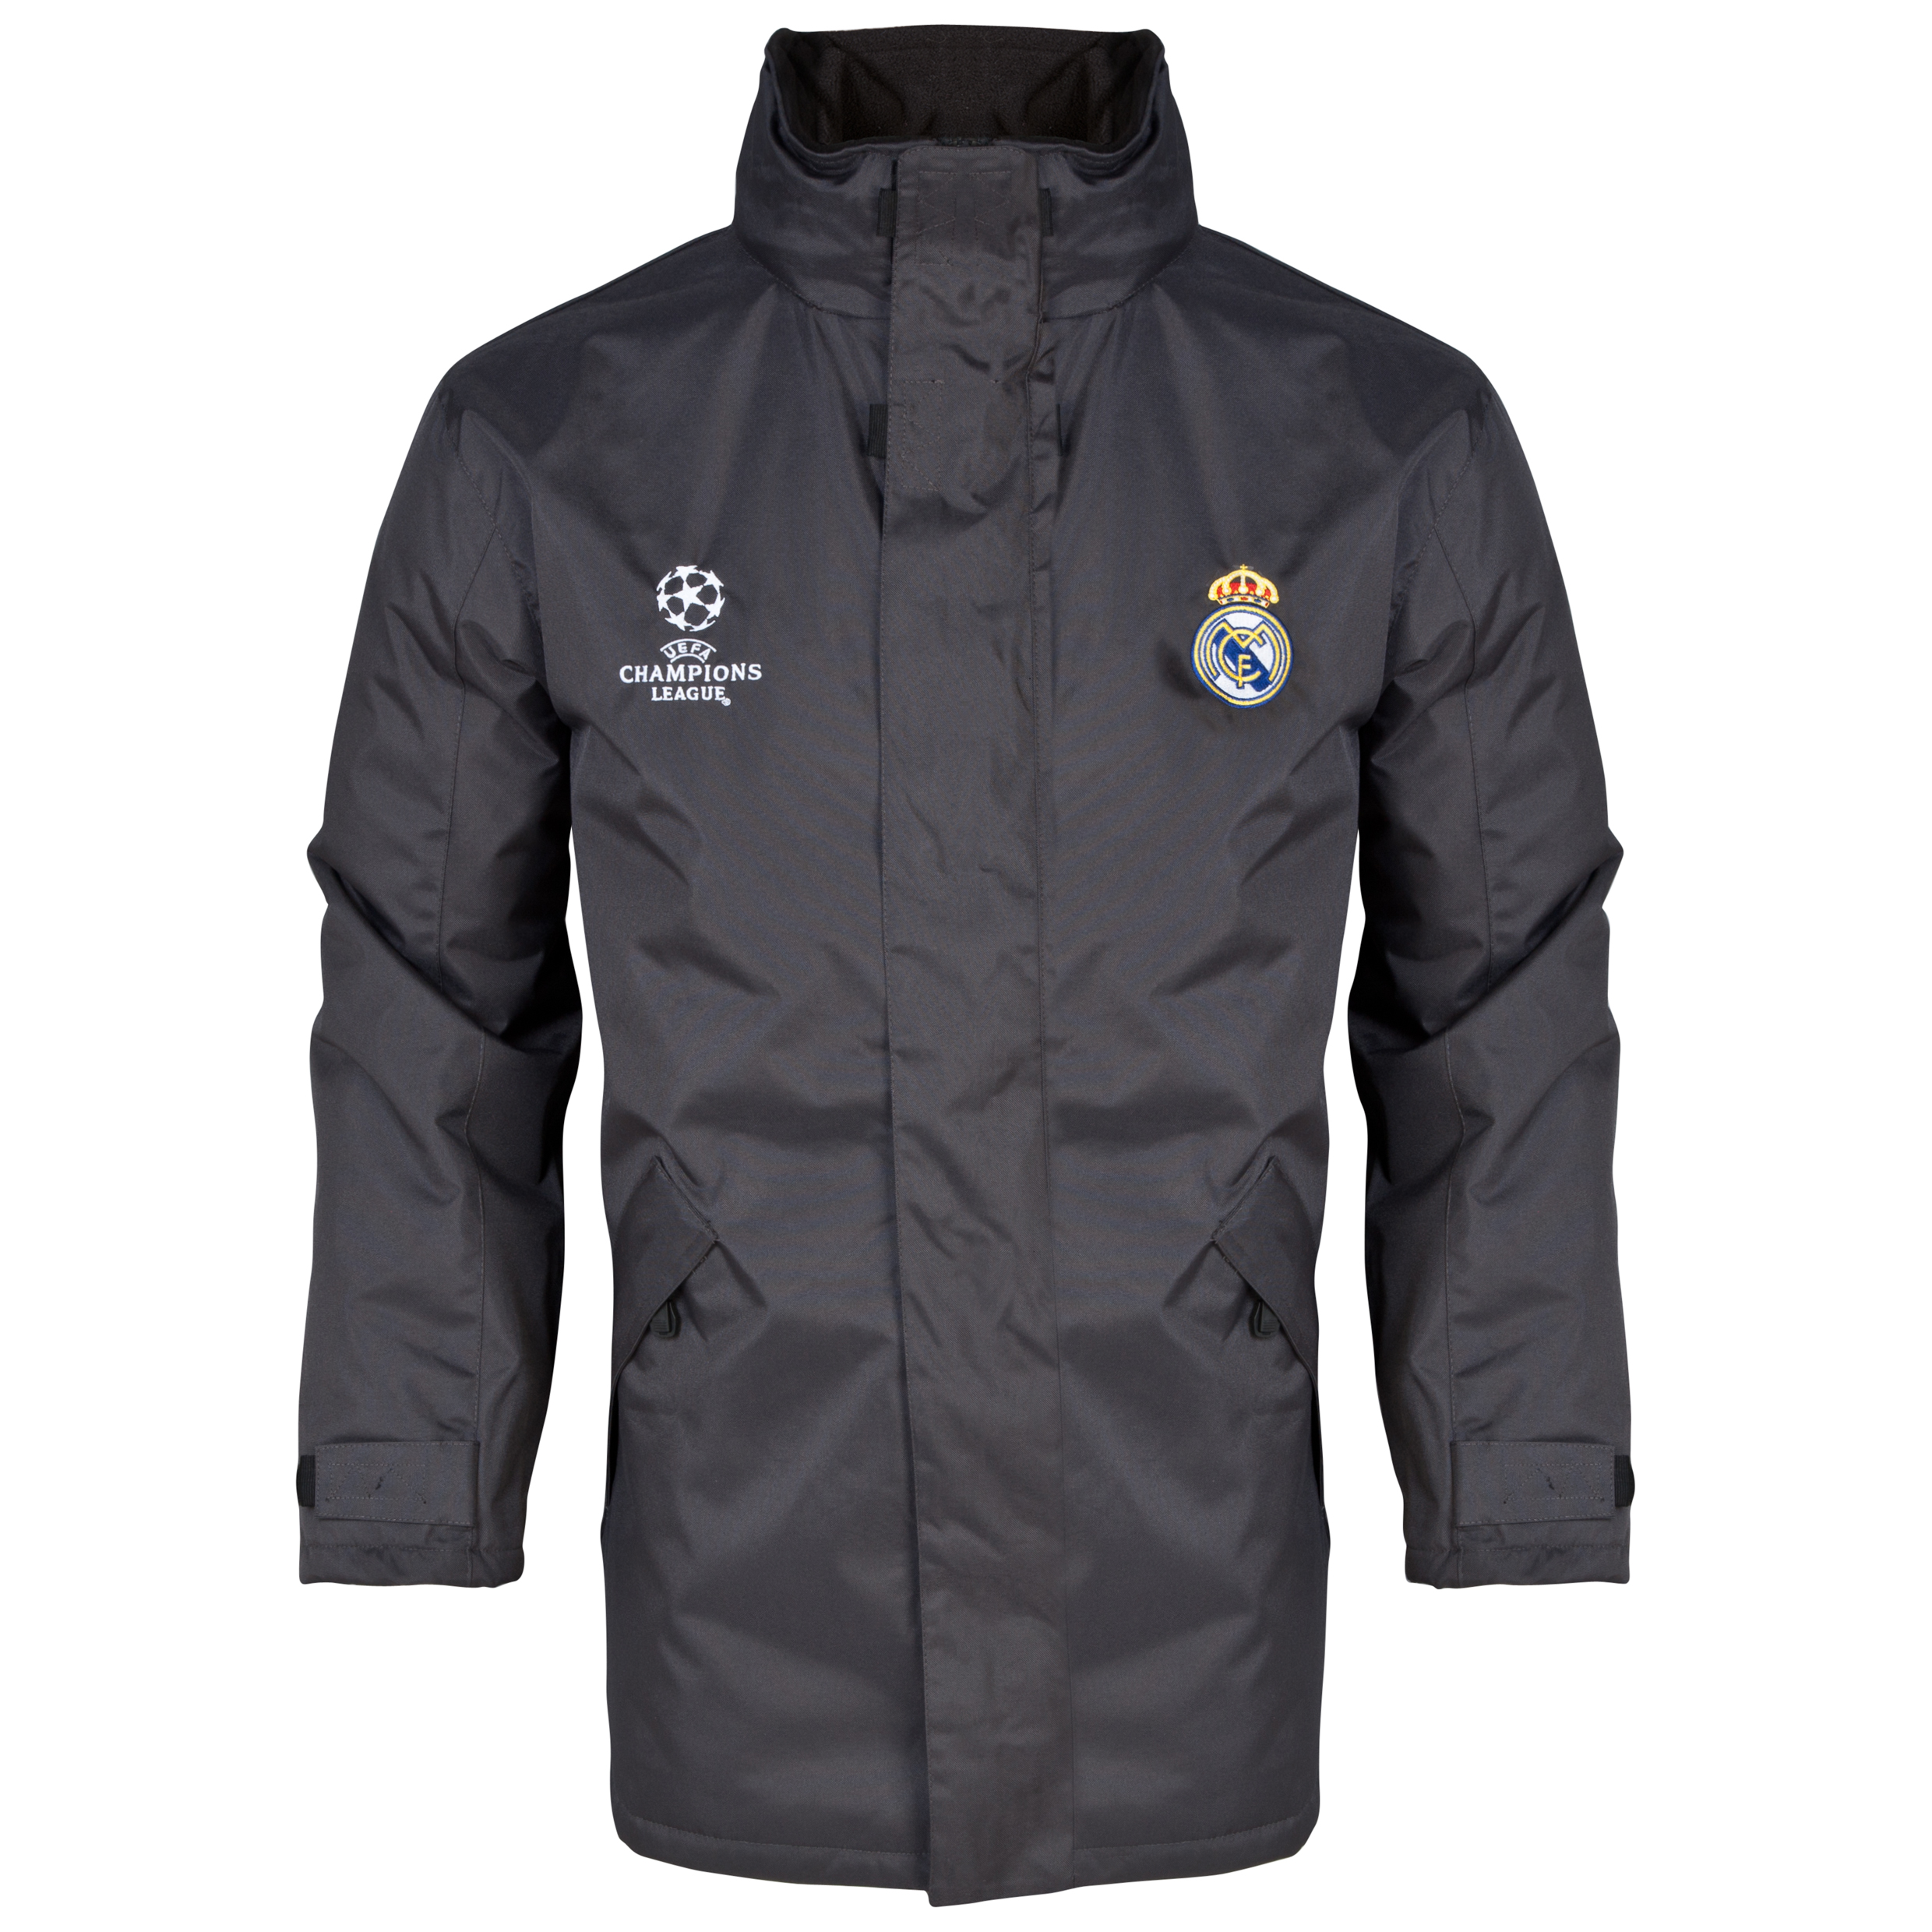 Real Madrid UEFA Champions League Heavy Jacket - Mens Charcoal